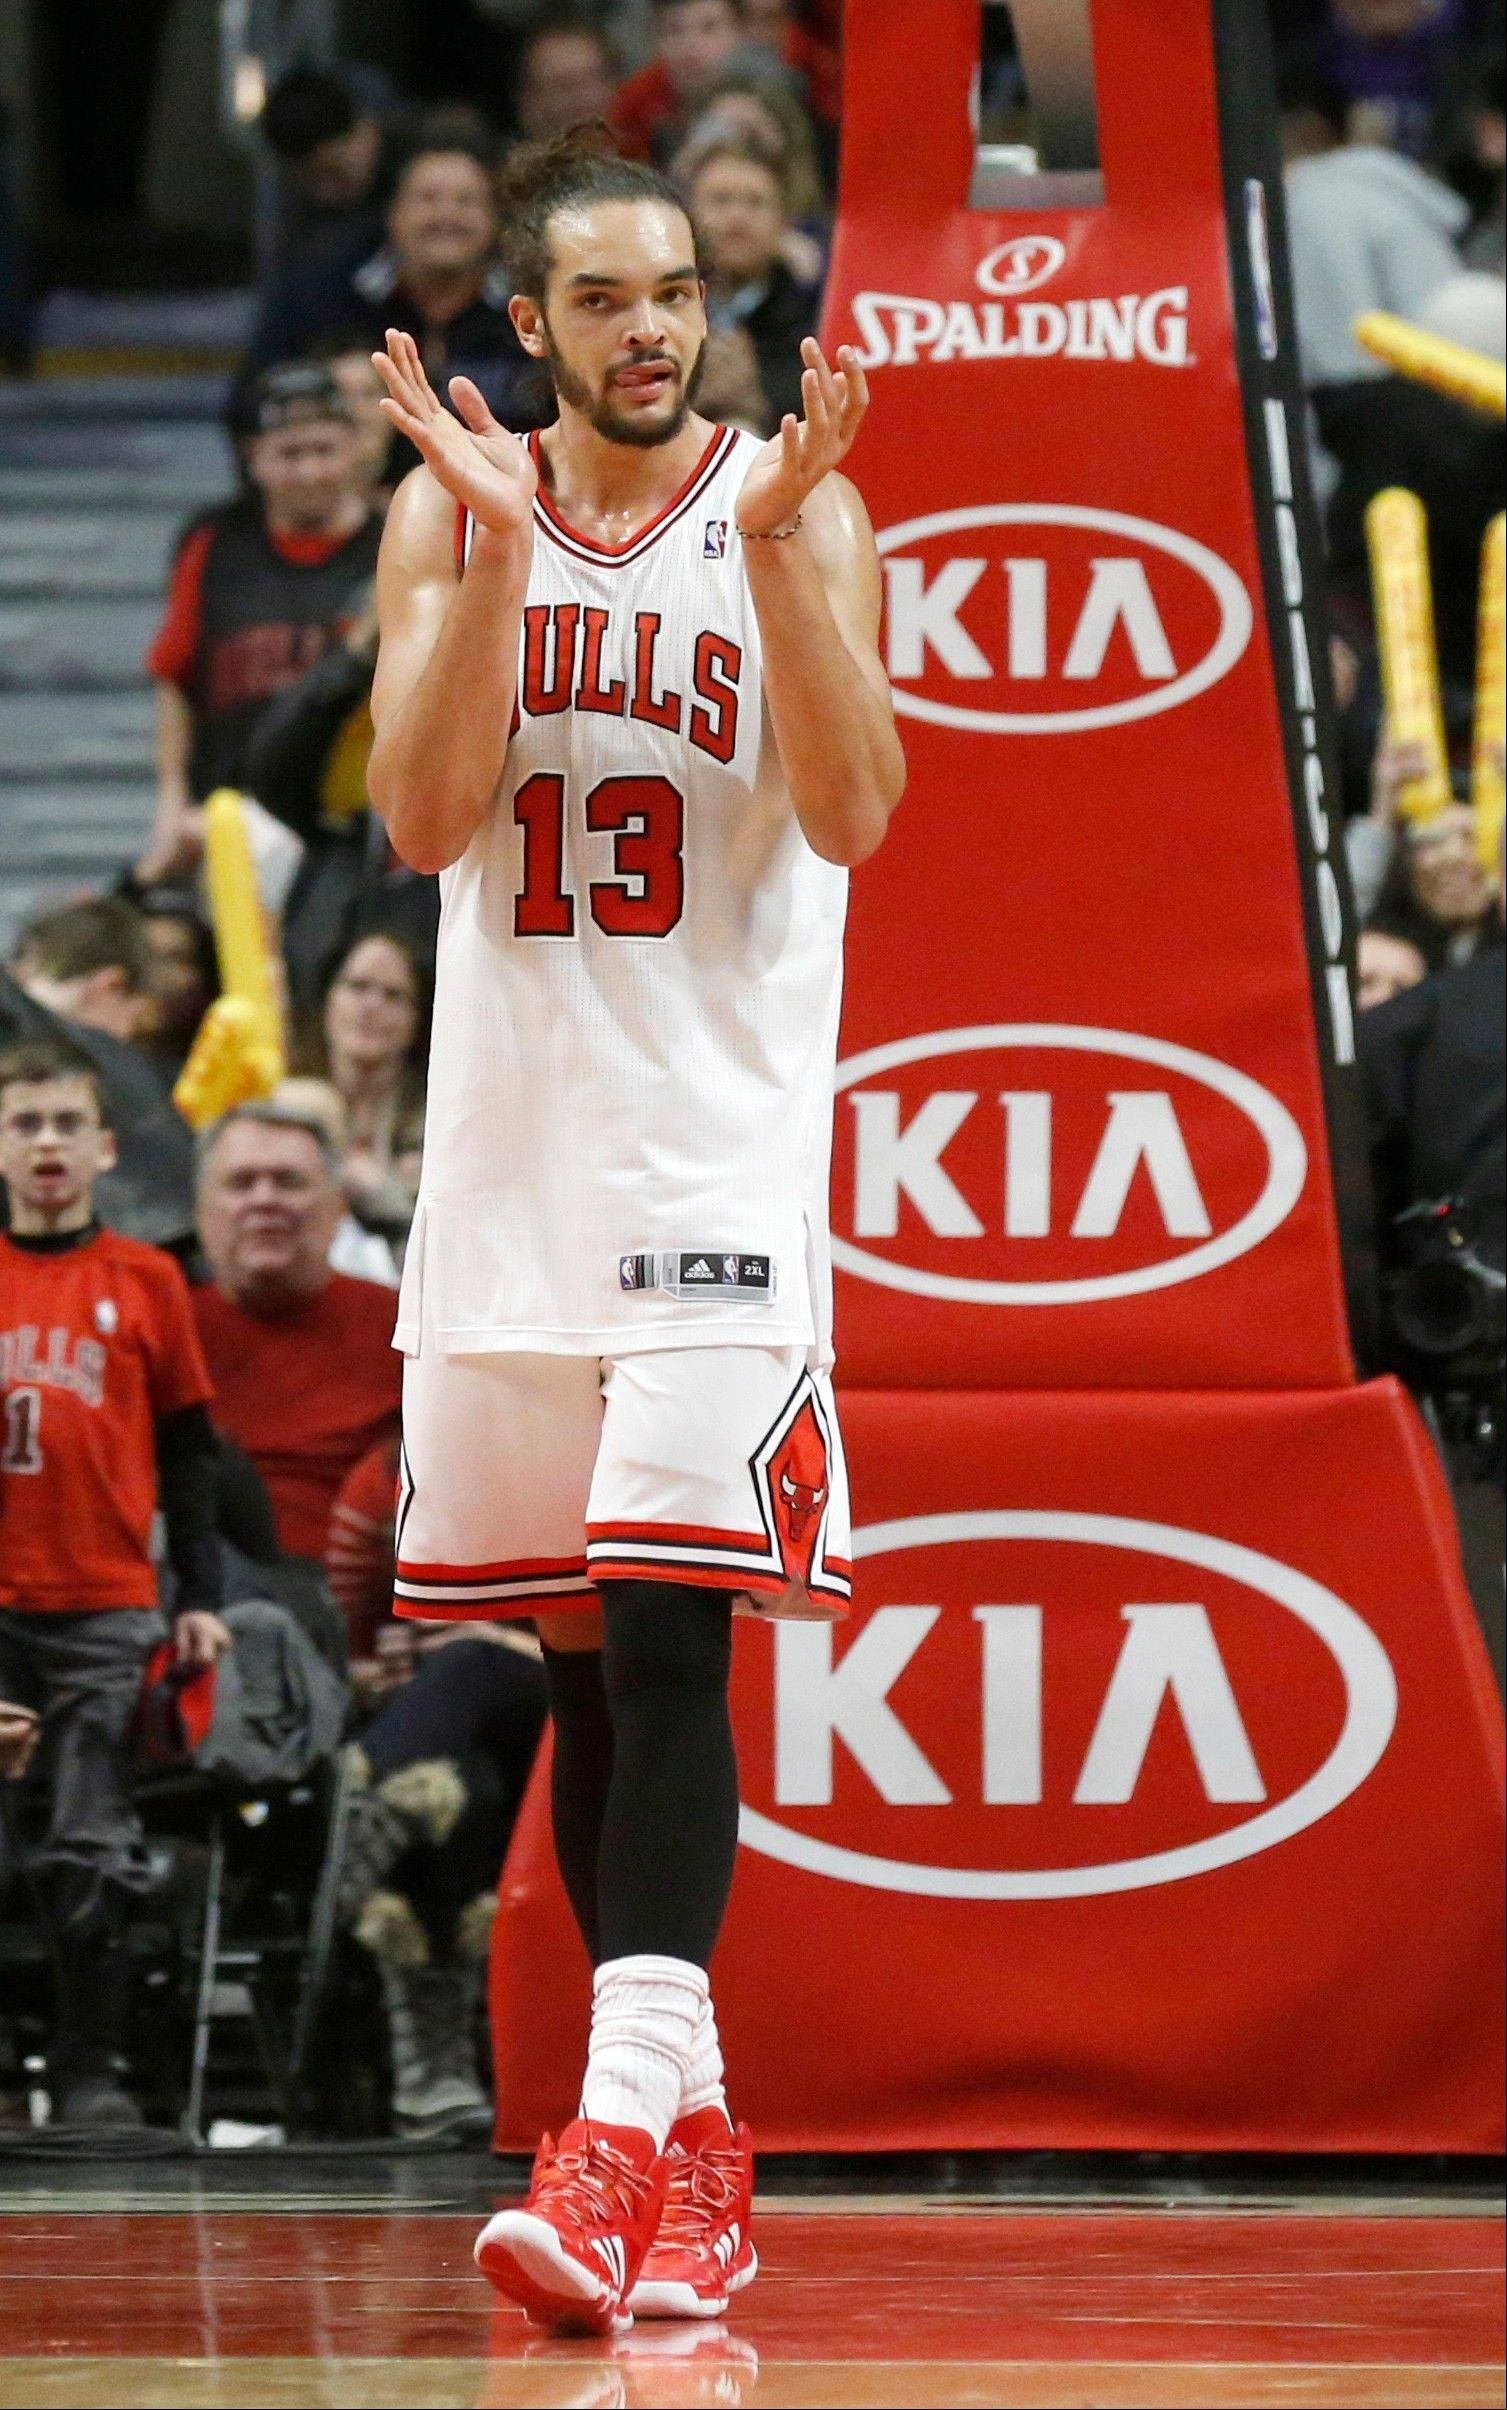 Chicago Bulls center Joakim Noah applauds his teammates during the second half of an NBA basketball game against the Boston Celtics, Thursday, Jan. 2, 2014, in Chicago. The Bulls won 94-82.